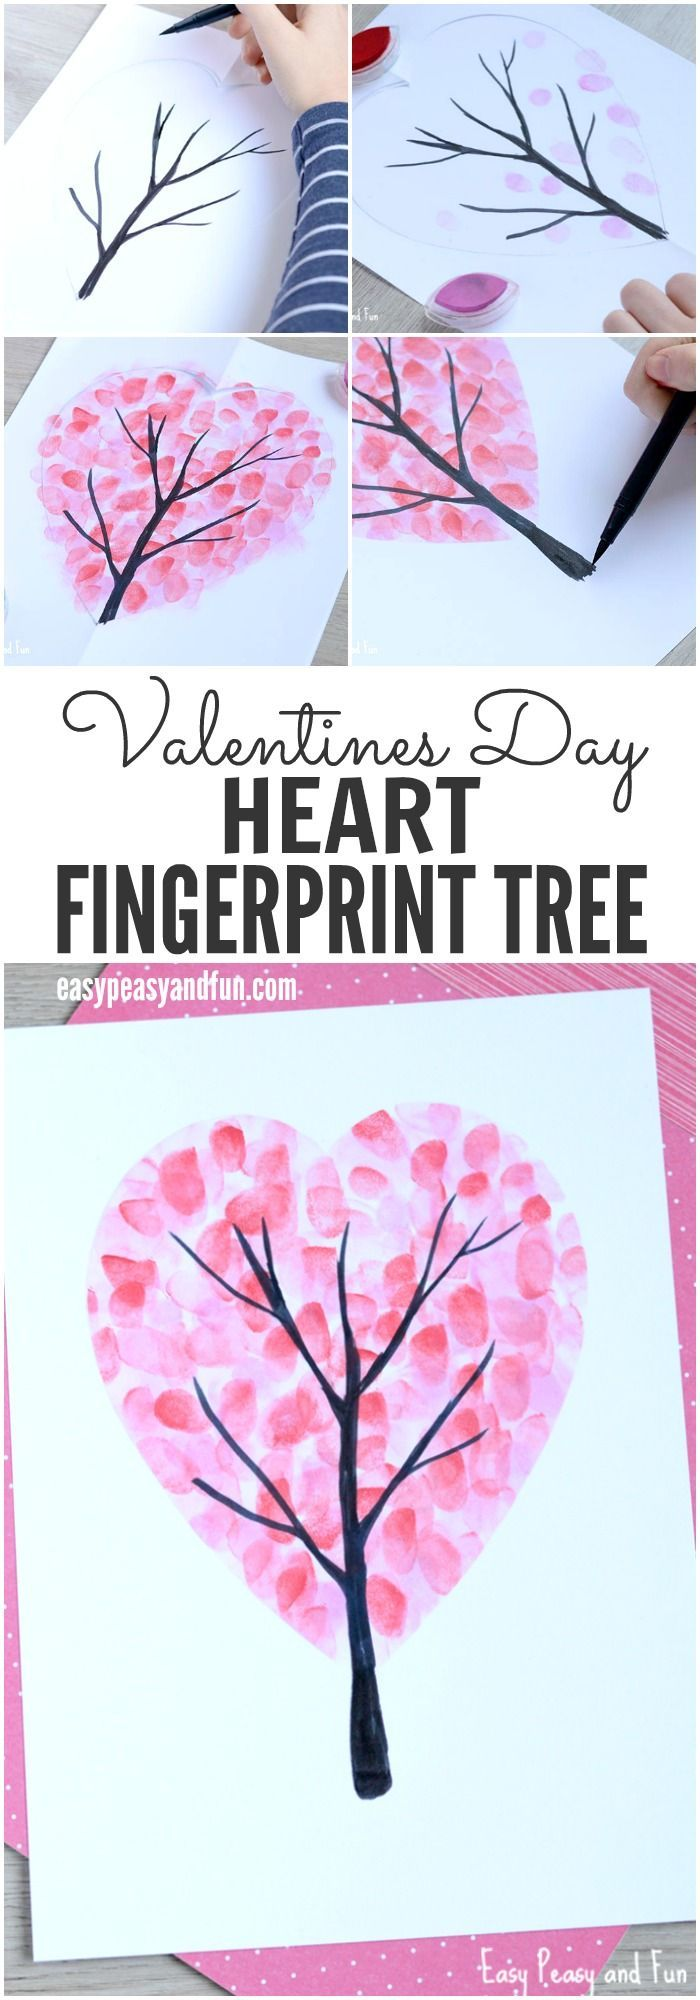 Easy Craft Ideas For Kids Pinterest Part - 43: Valentines Day Heart Fingerprint Tree Craft